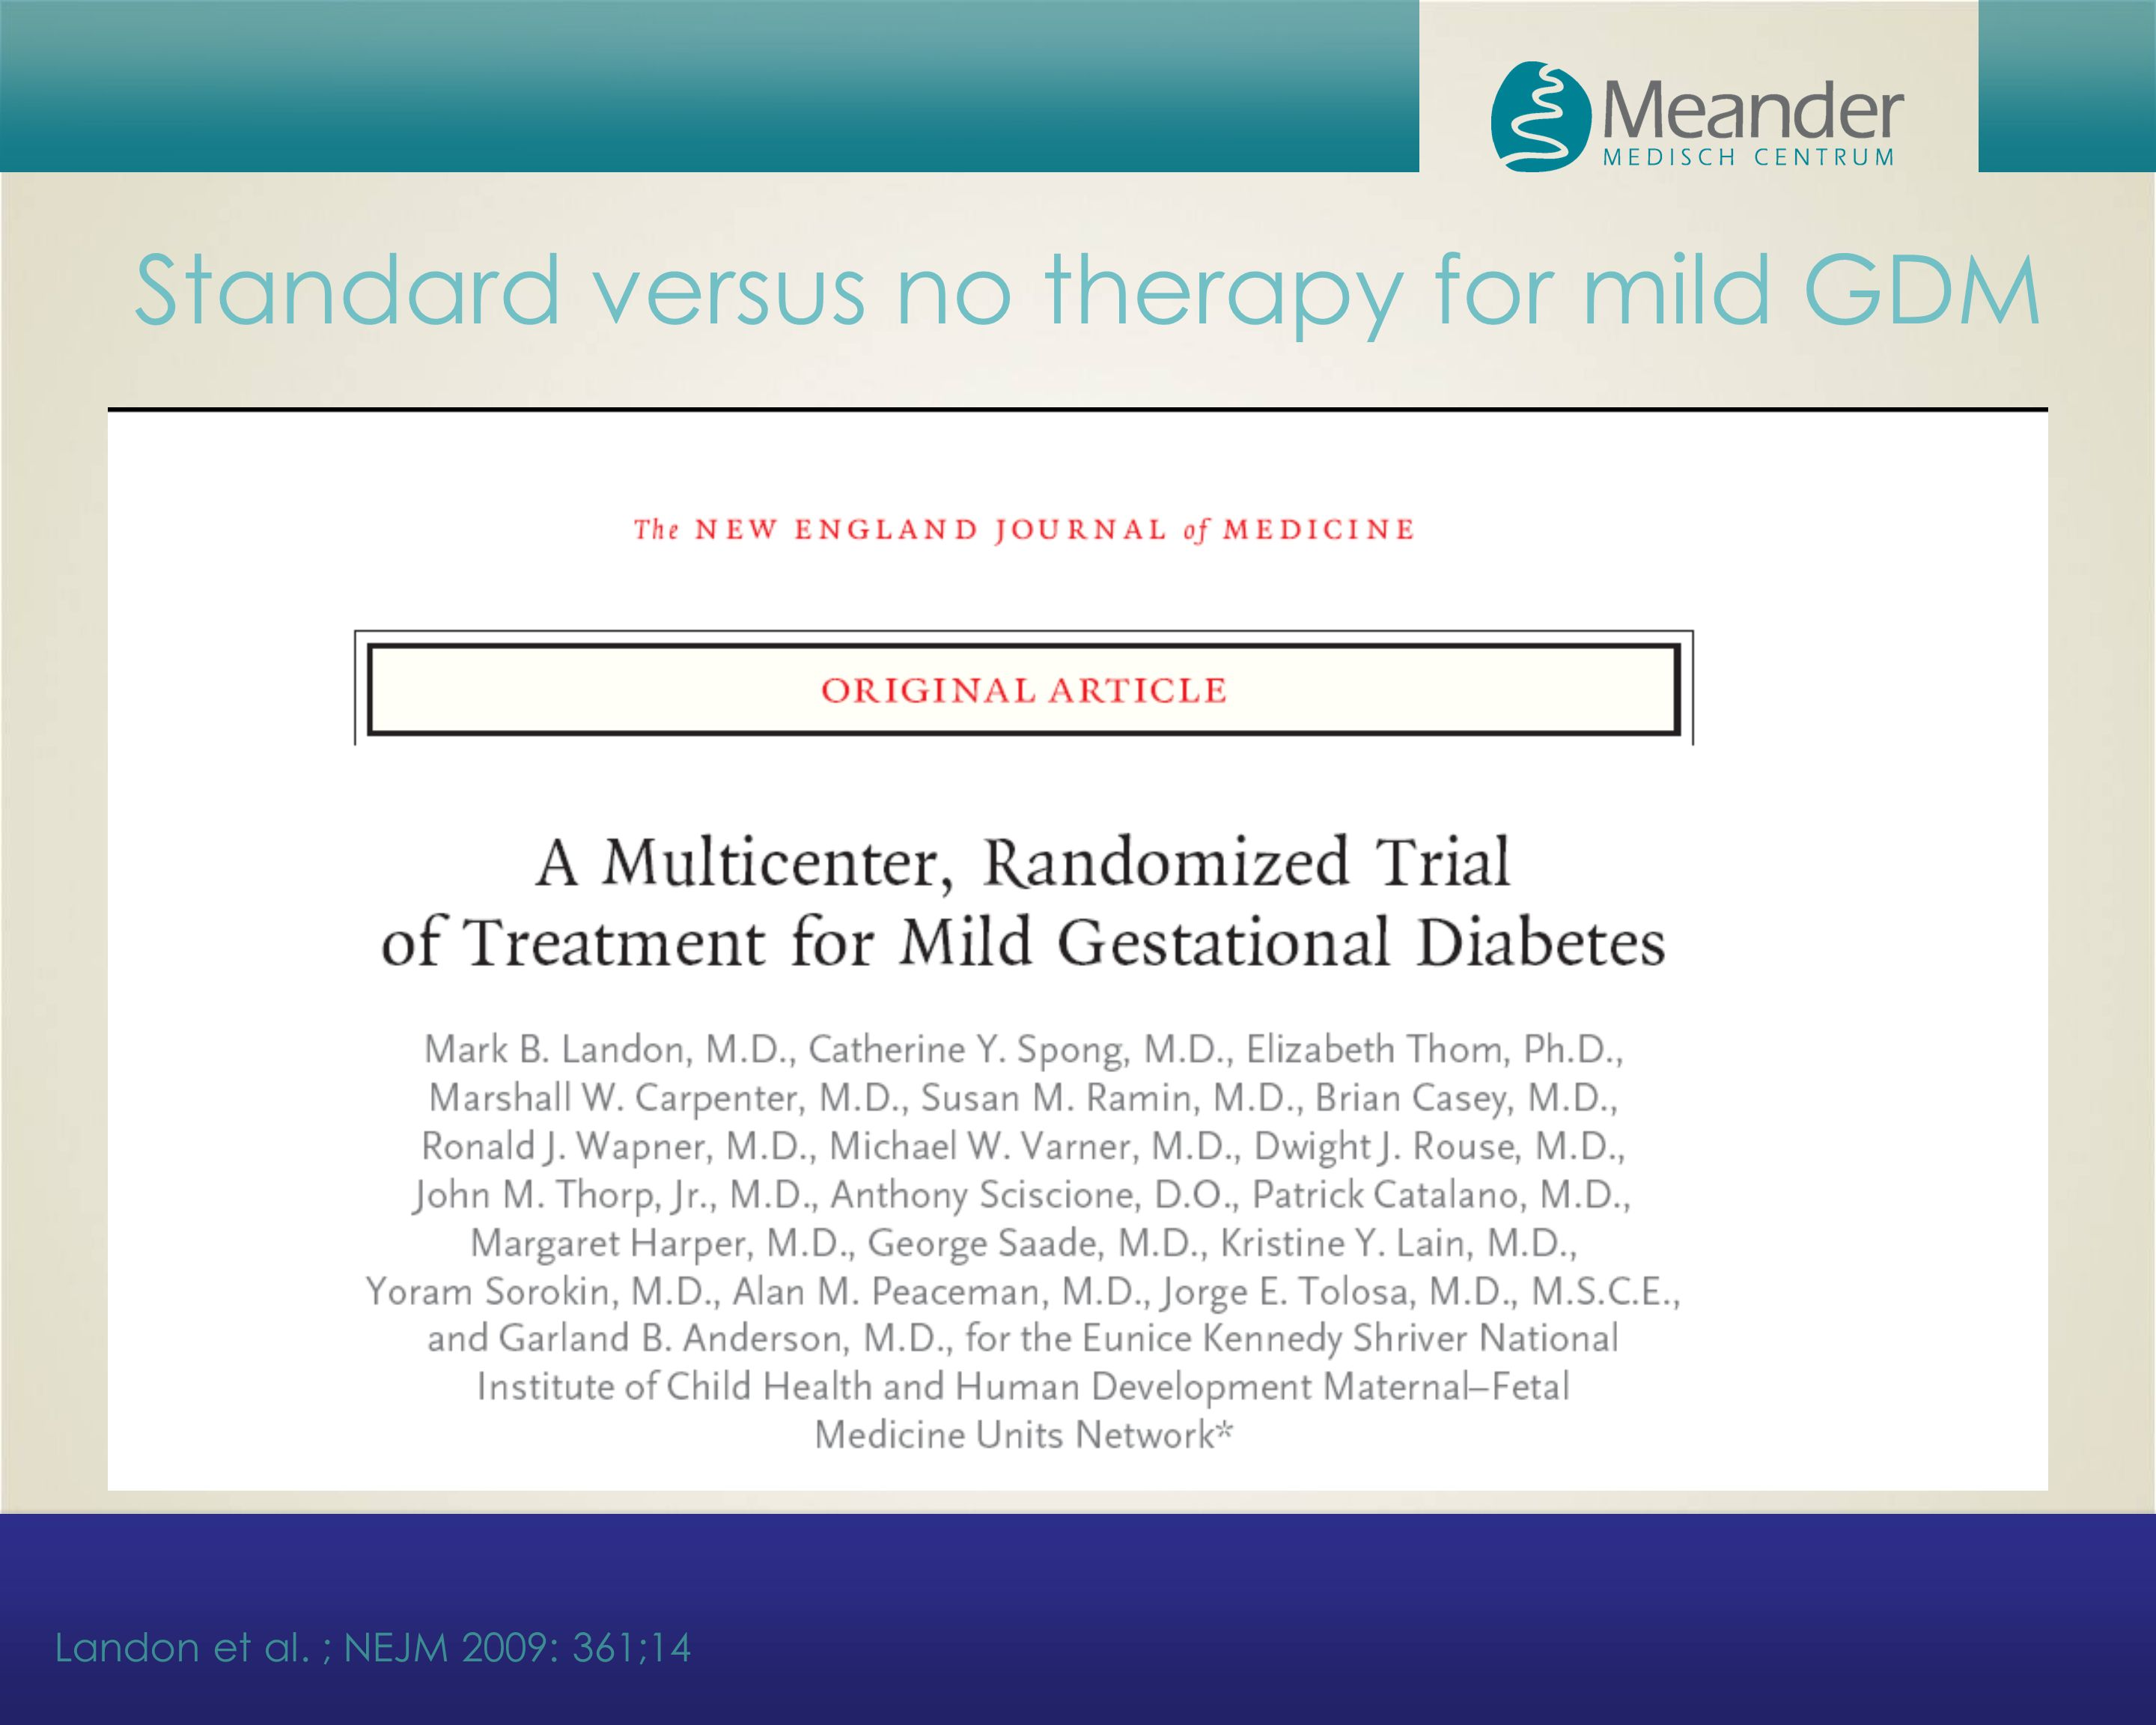 Standard versus no therapy for mild GDM